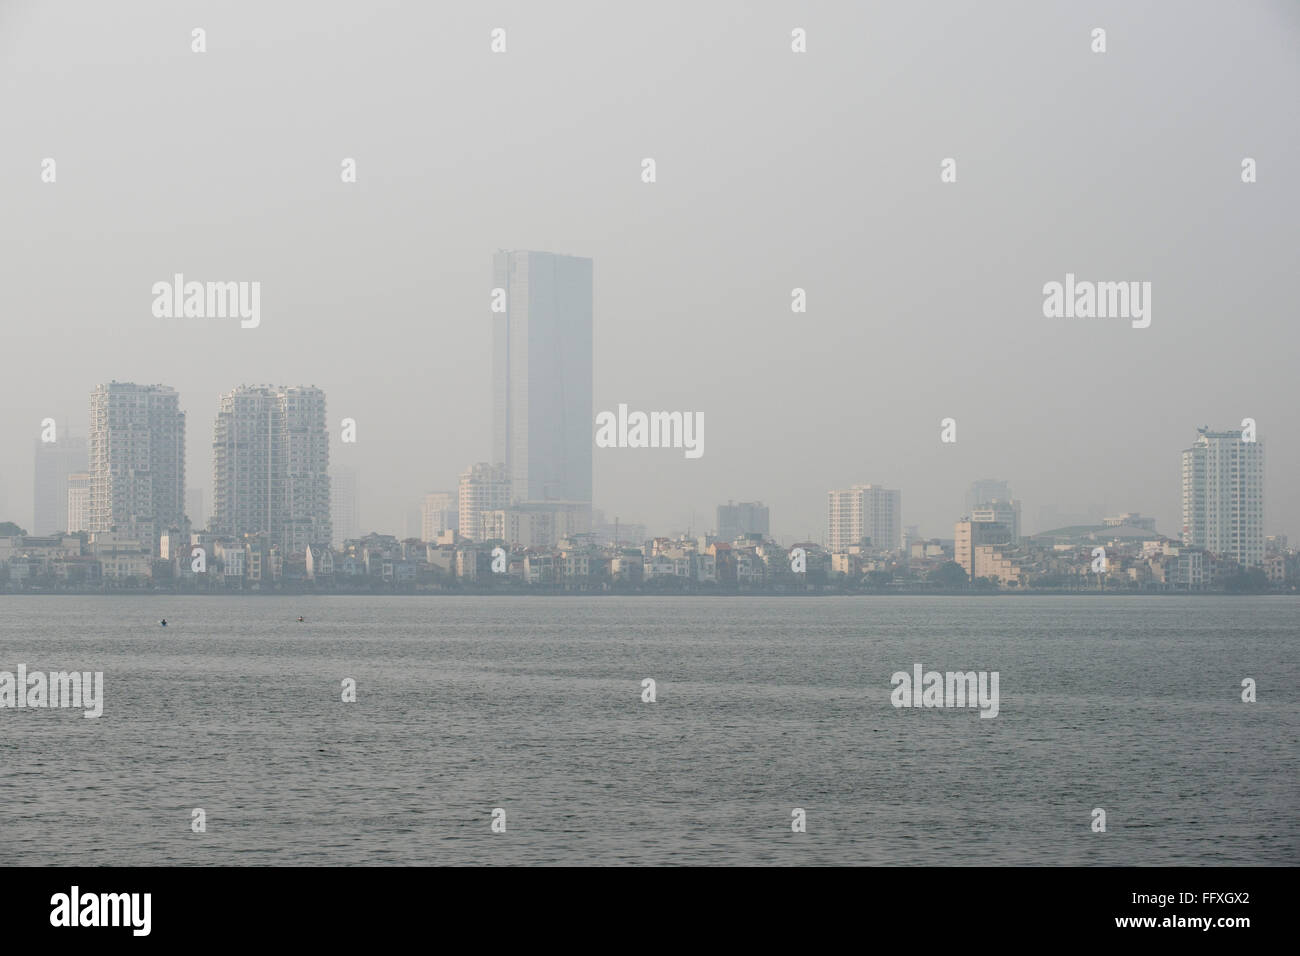 Mist, fog or smog pollution in a hazy skyline of Hanoi viewed over Westlake, Vietnam, January - Stock Image